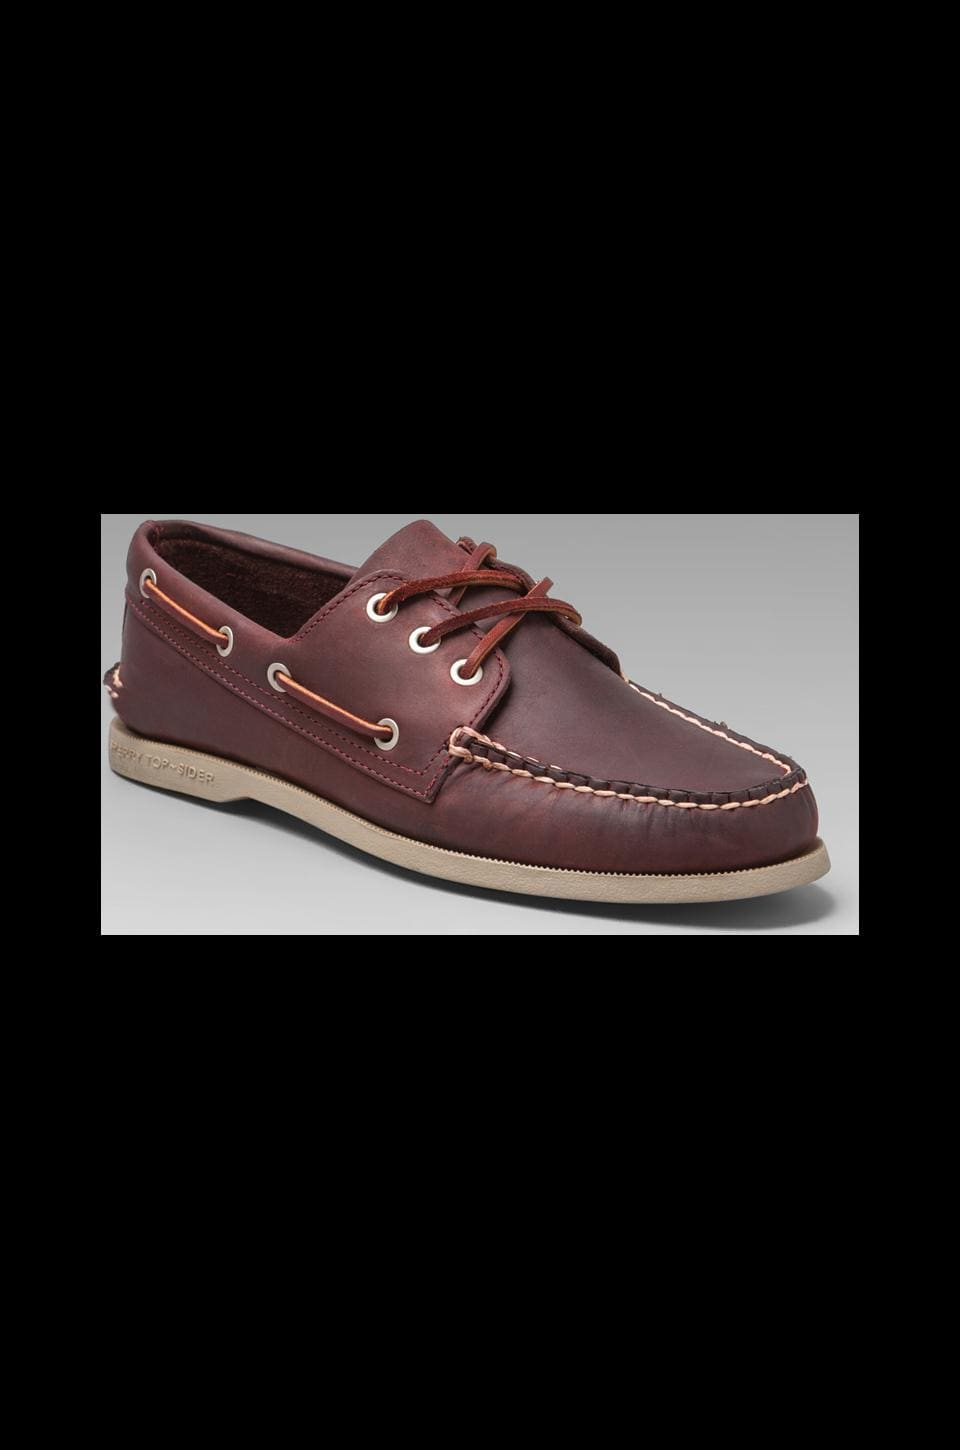 Sperry Top-Sider Silvercloud Collection A/O in Oxblood/Dune